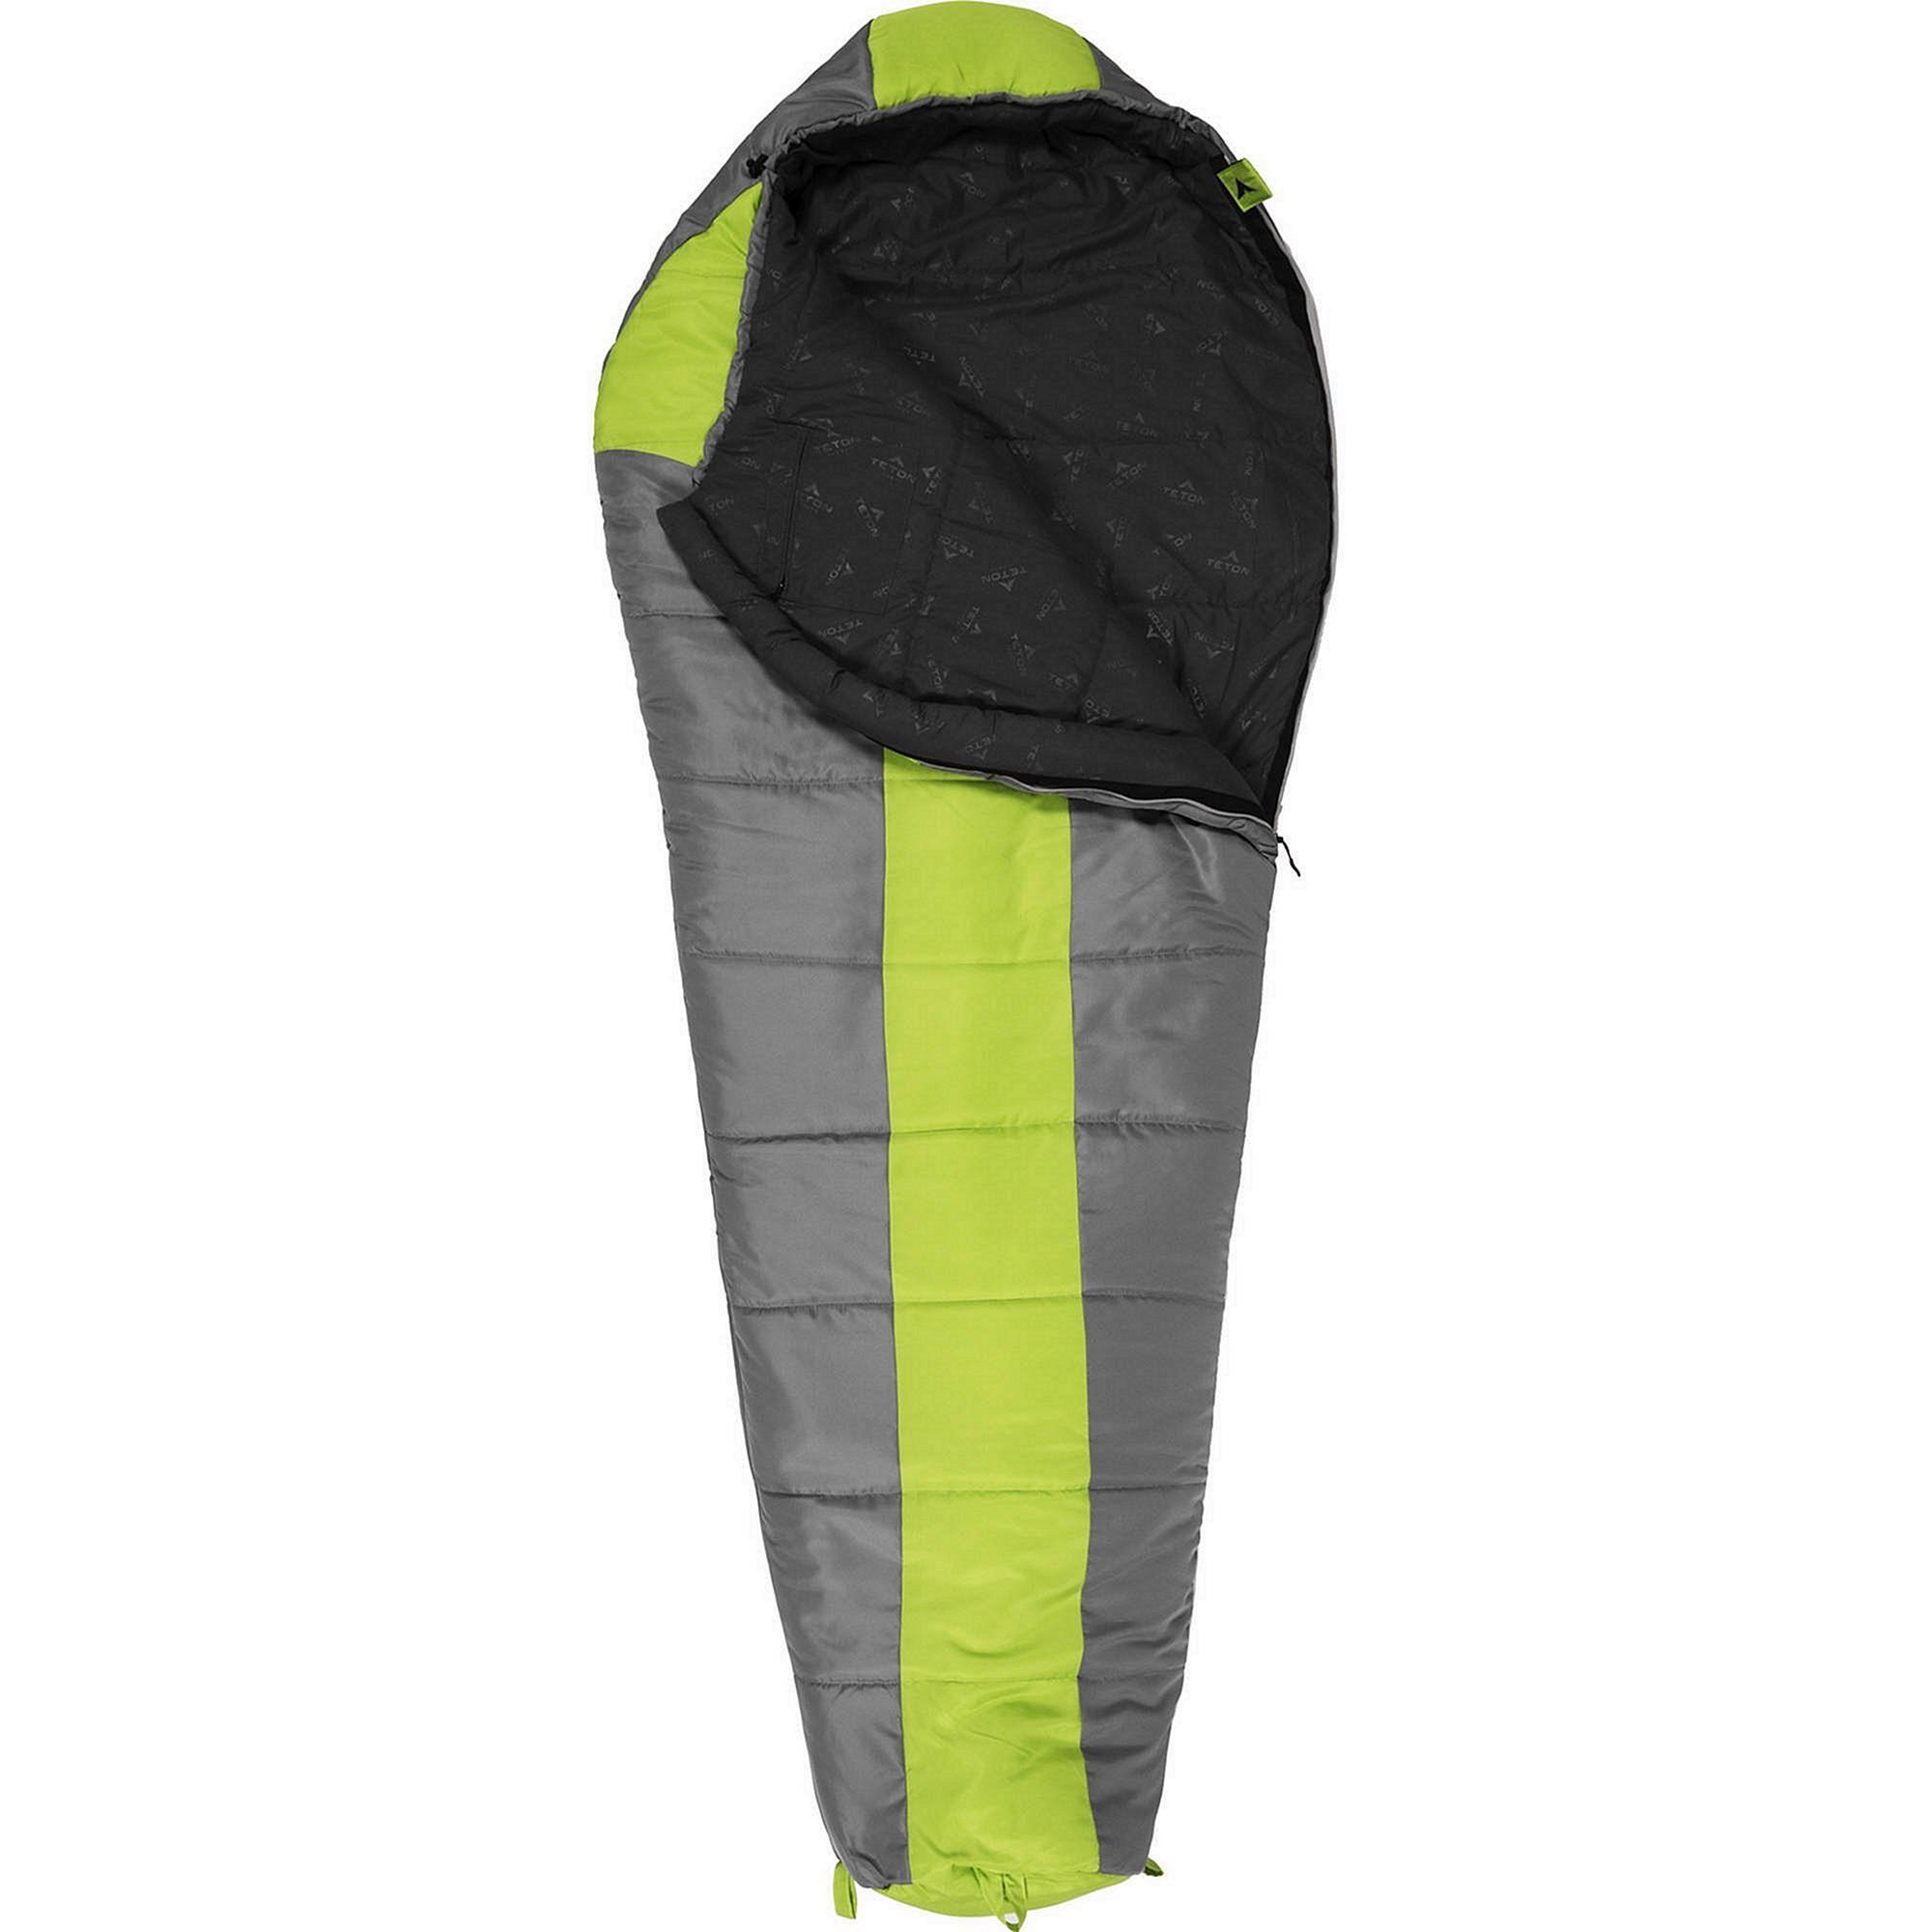 TETON Sports Tracker 5 Lightweight Mummy Sleeping Bag